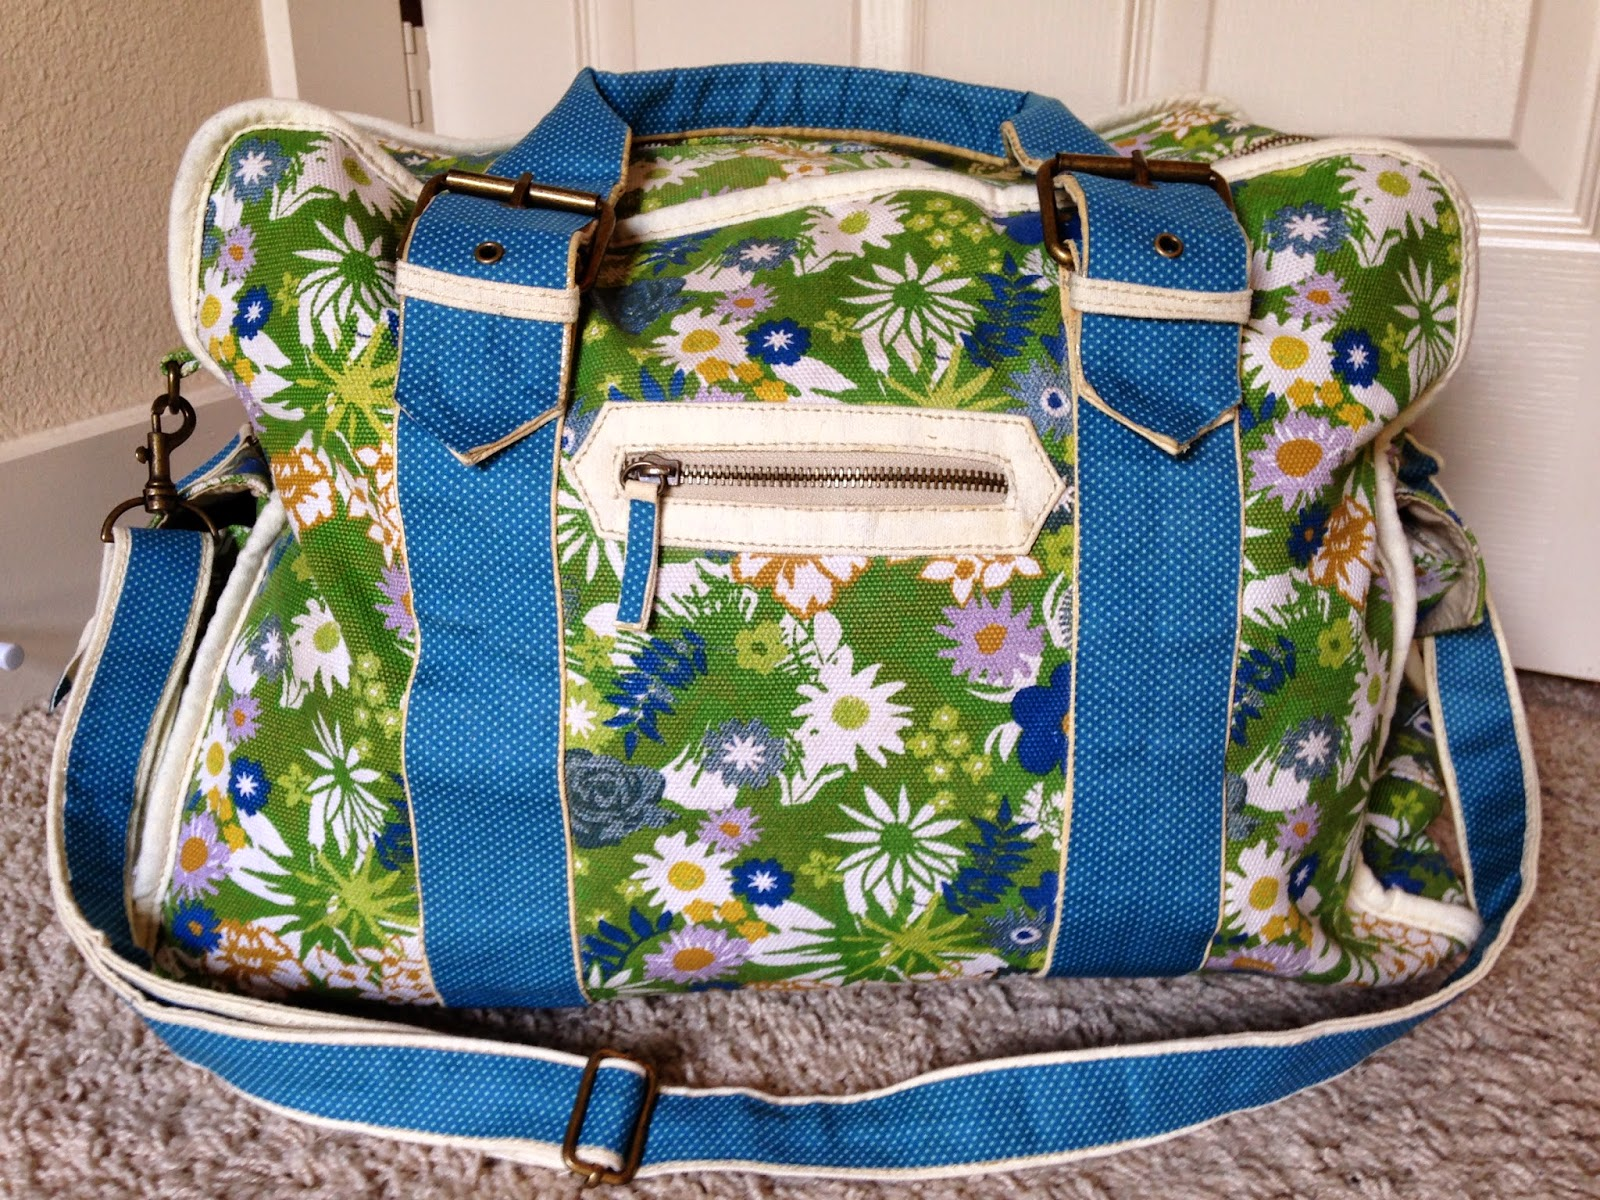 Ulterior Alterations: Weekend Bag Duck Tape Fix Complete